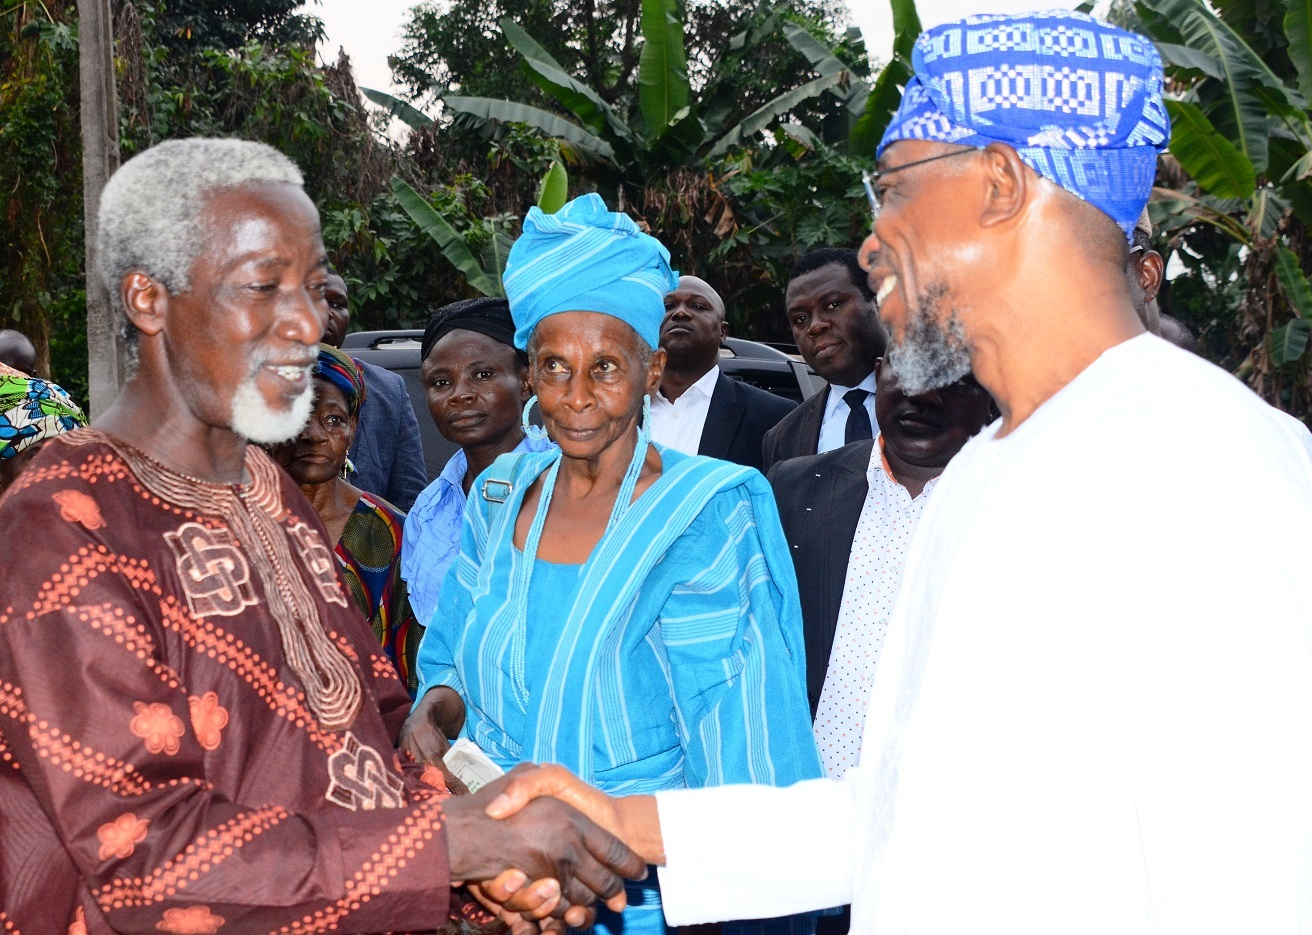 Governor State of Osun, Ogbeni Rauf Aregbesola (right) exchanging pleasantries with a Christian Cleric, Evangelist Oyewole Olowomojuore (left); with them is African Cultural Promoter, Yeye Akilimali Funma Olade (middle), during a visit to African Heritage Research Library and Cultural Centre, Adeyipo Village, Ibadan, Oyo State, on Tuesday 19-01-2016.